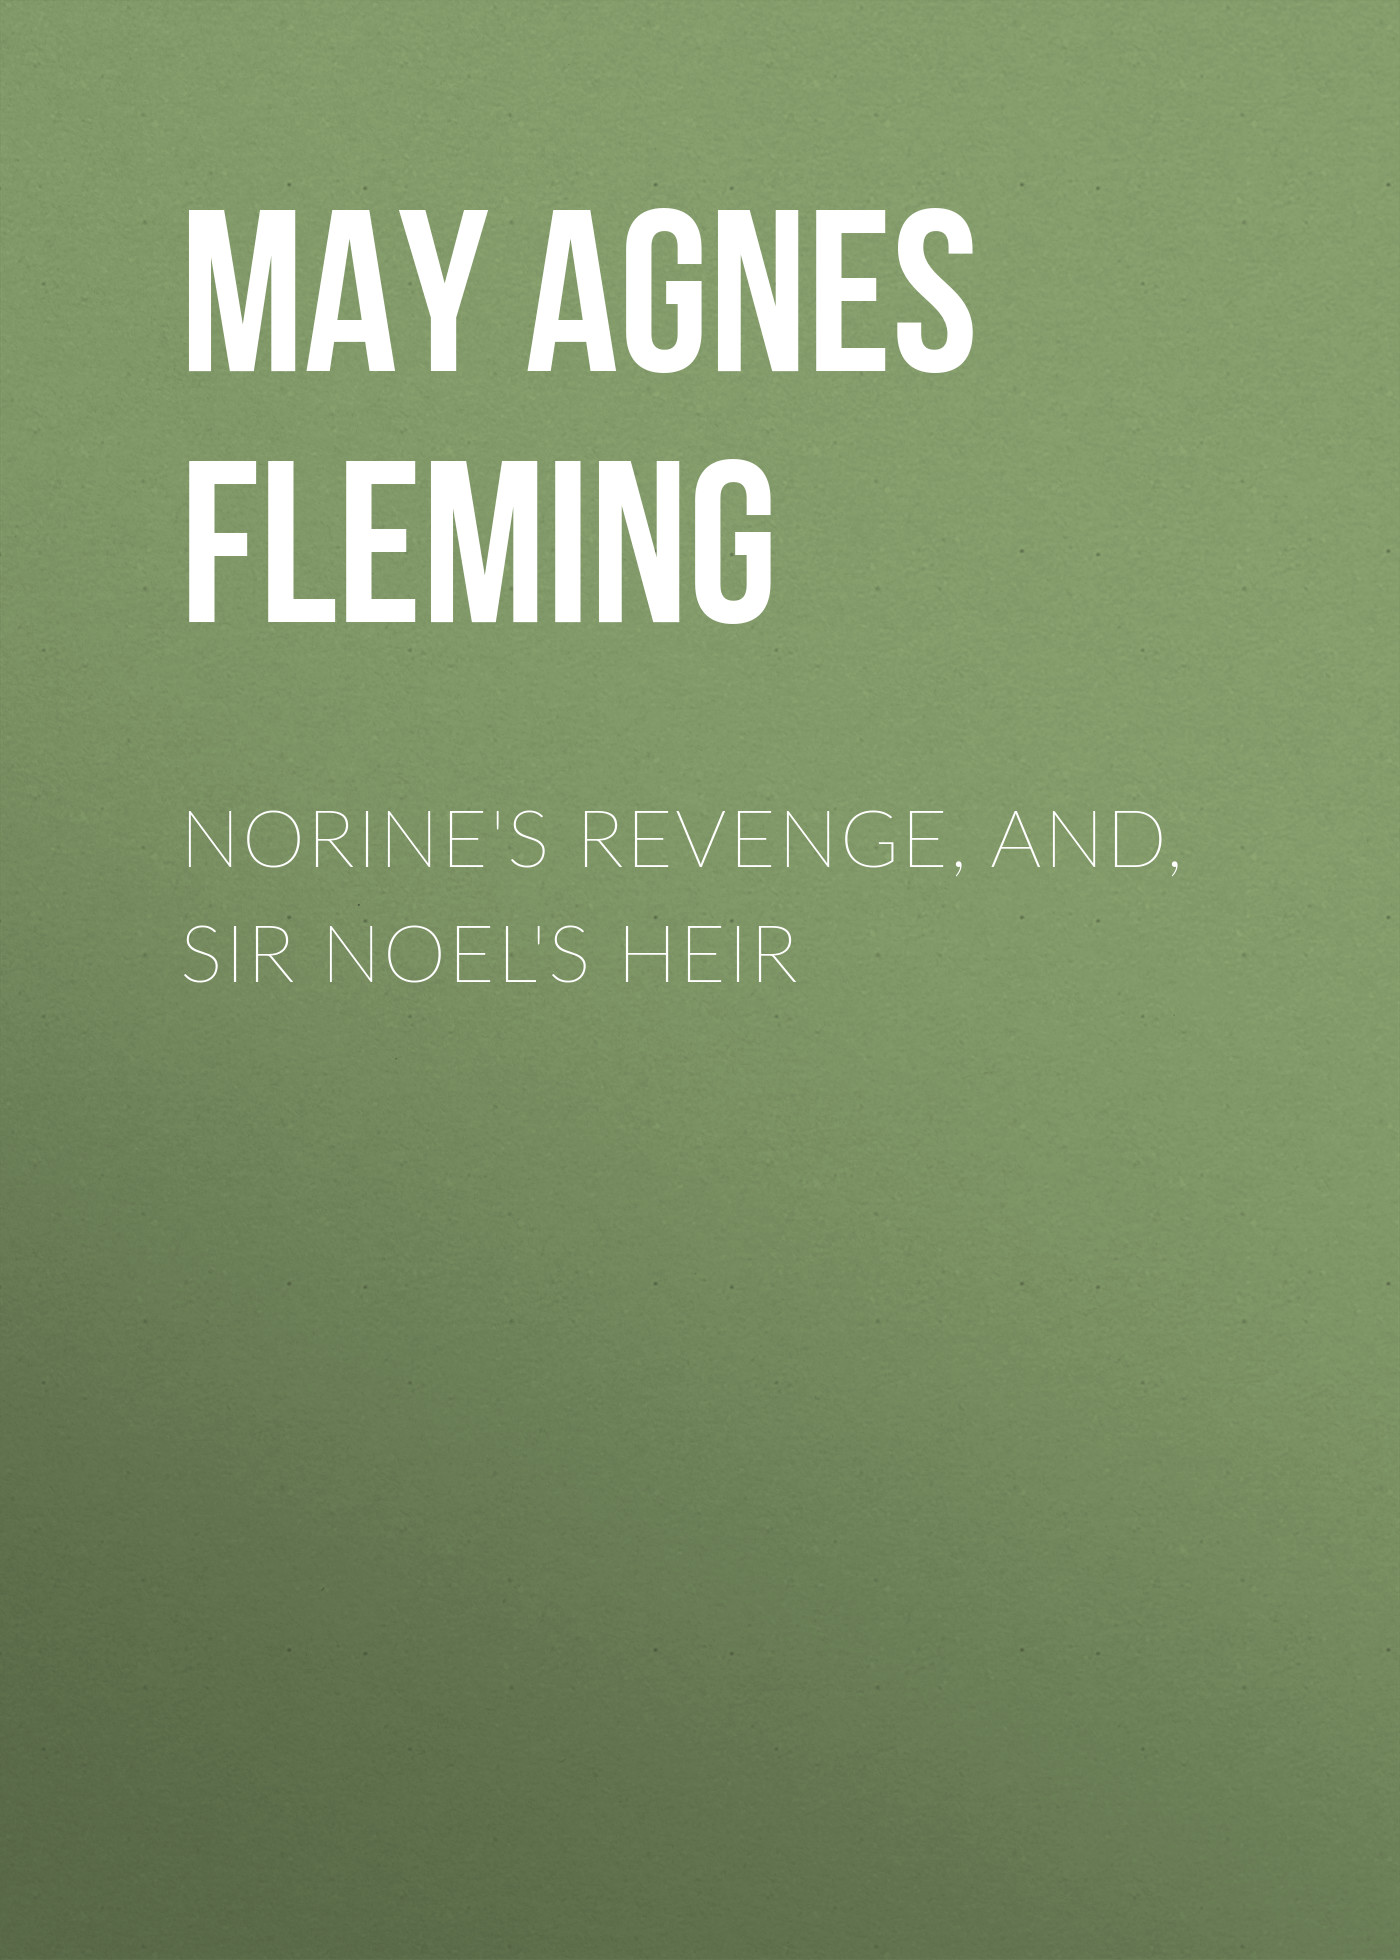 цена May Agnes Fleming Norine's Revenge, and, Sir Noel's Heir